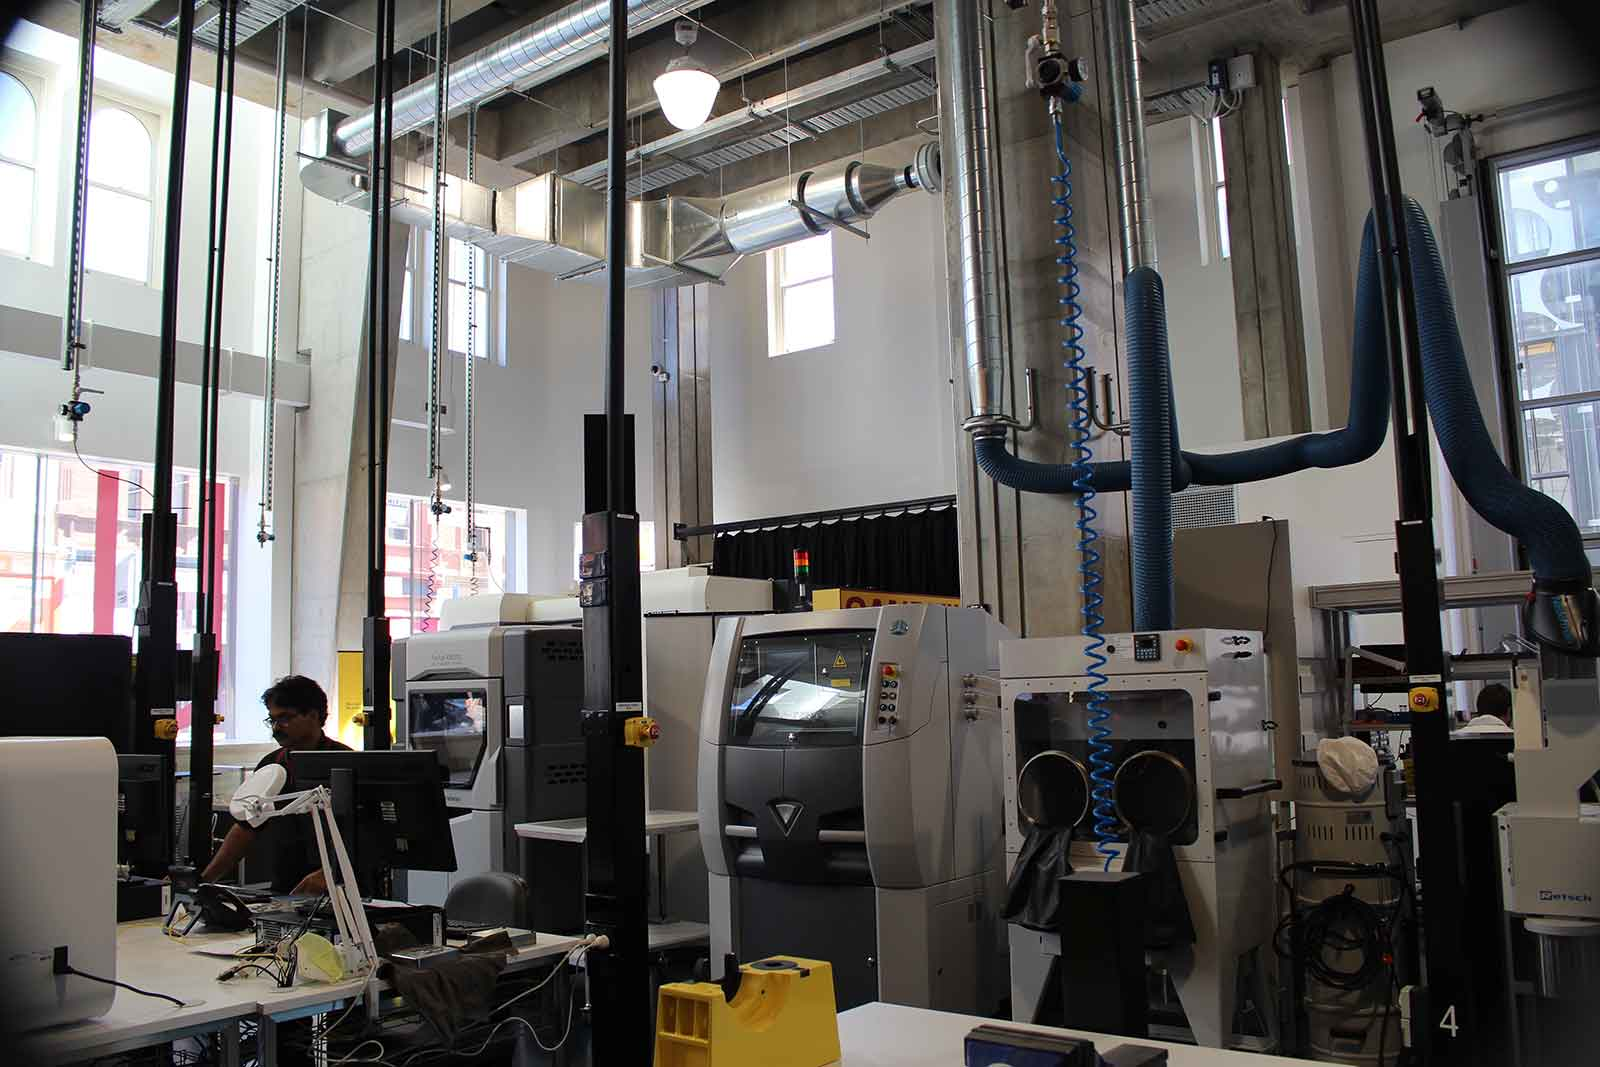 Advanced Manufacturing and Design Centre, University of Swinburne, Australia (foto: jurusanku.com)